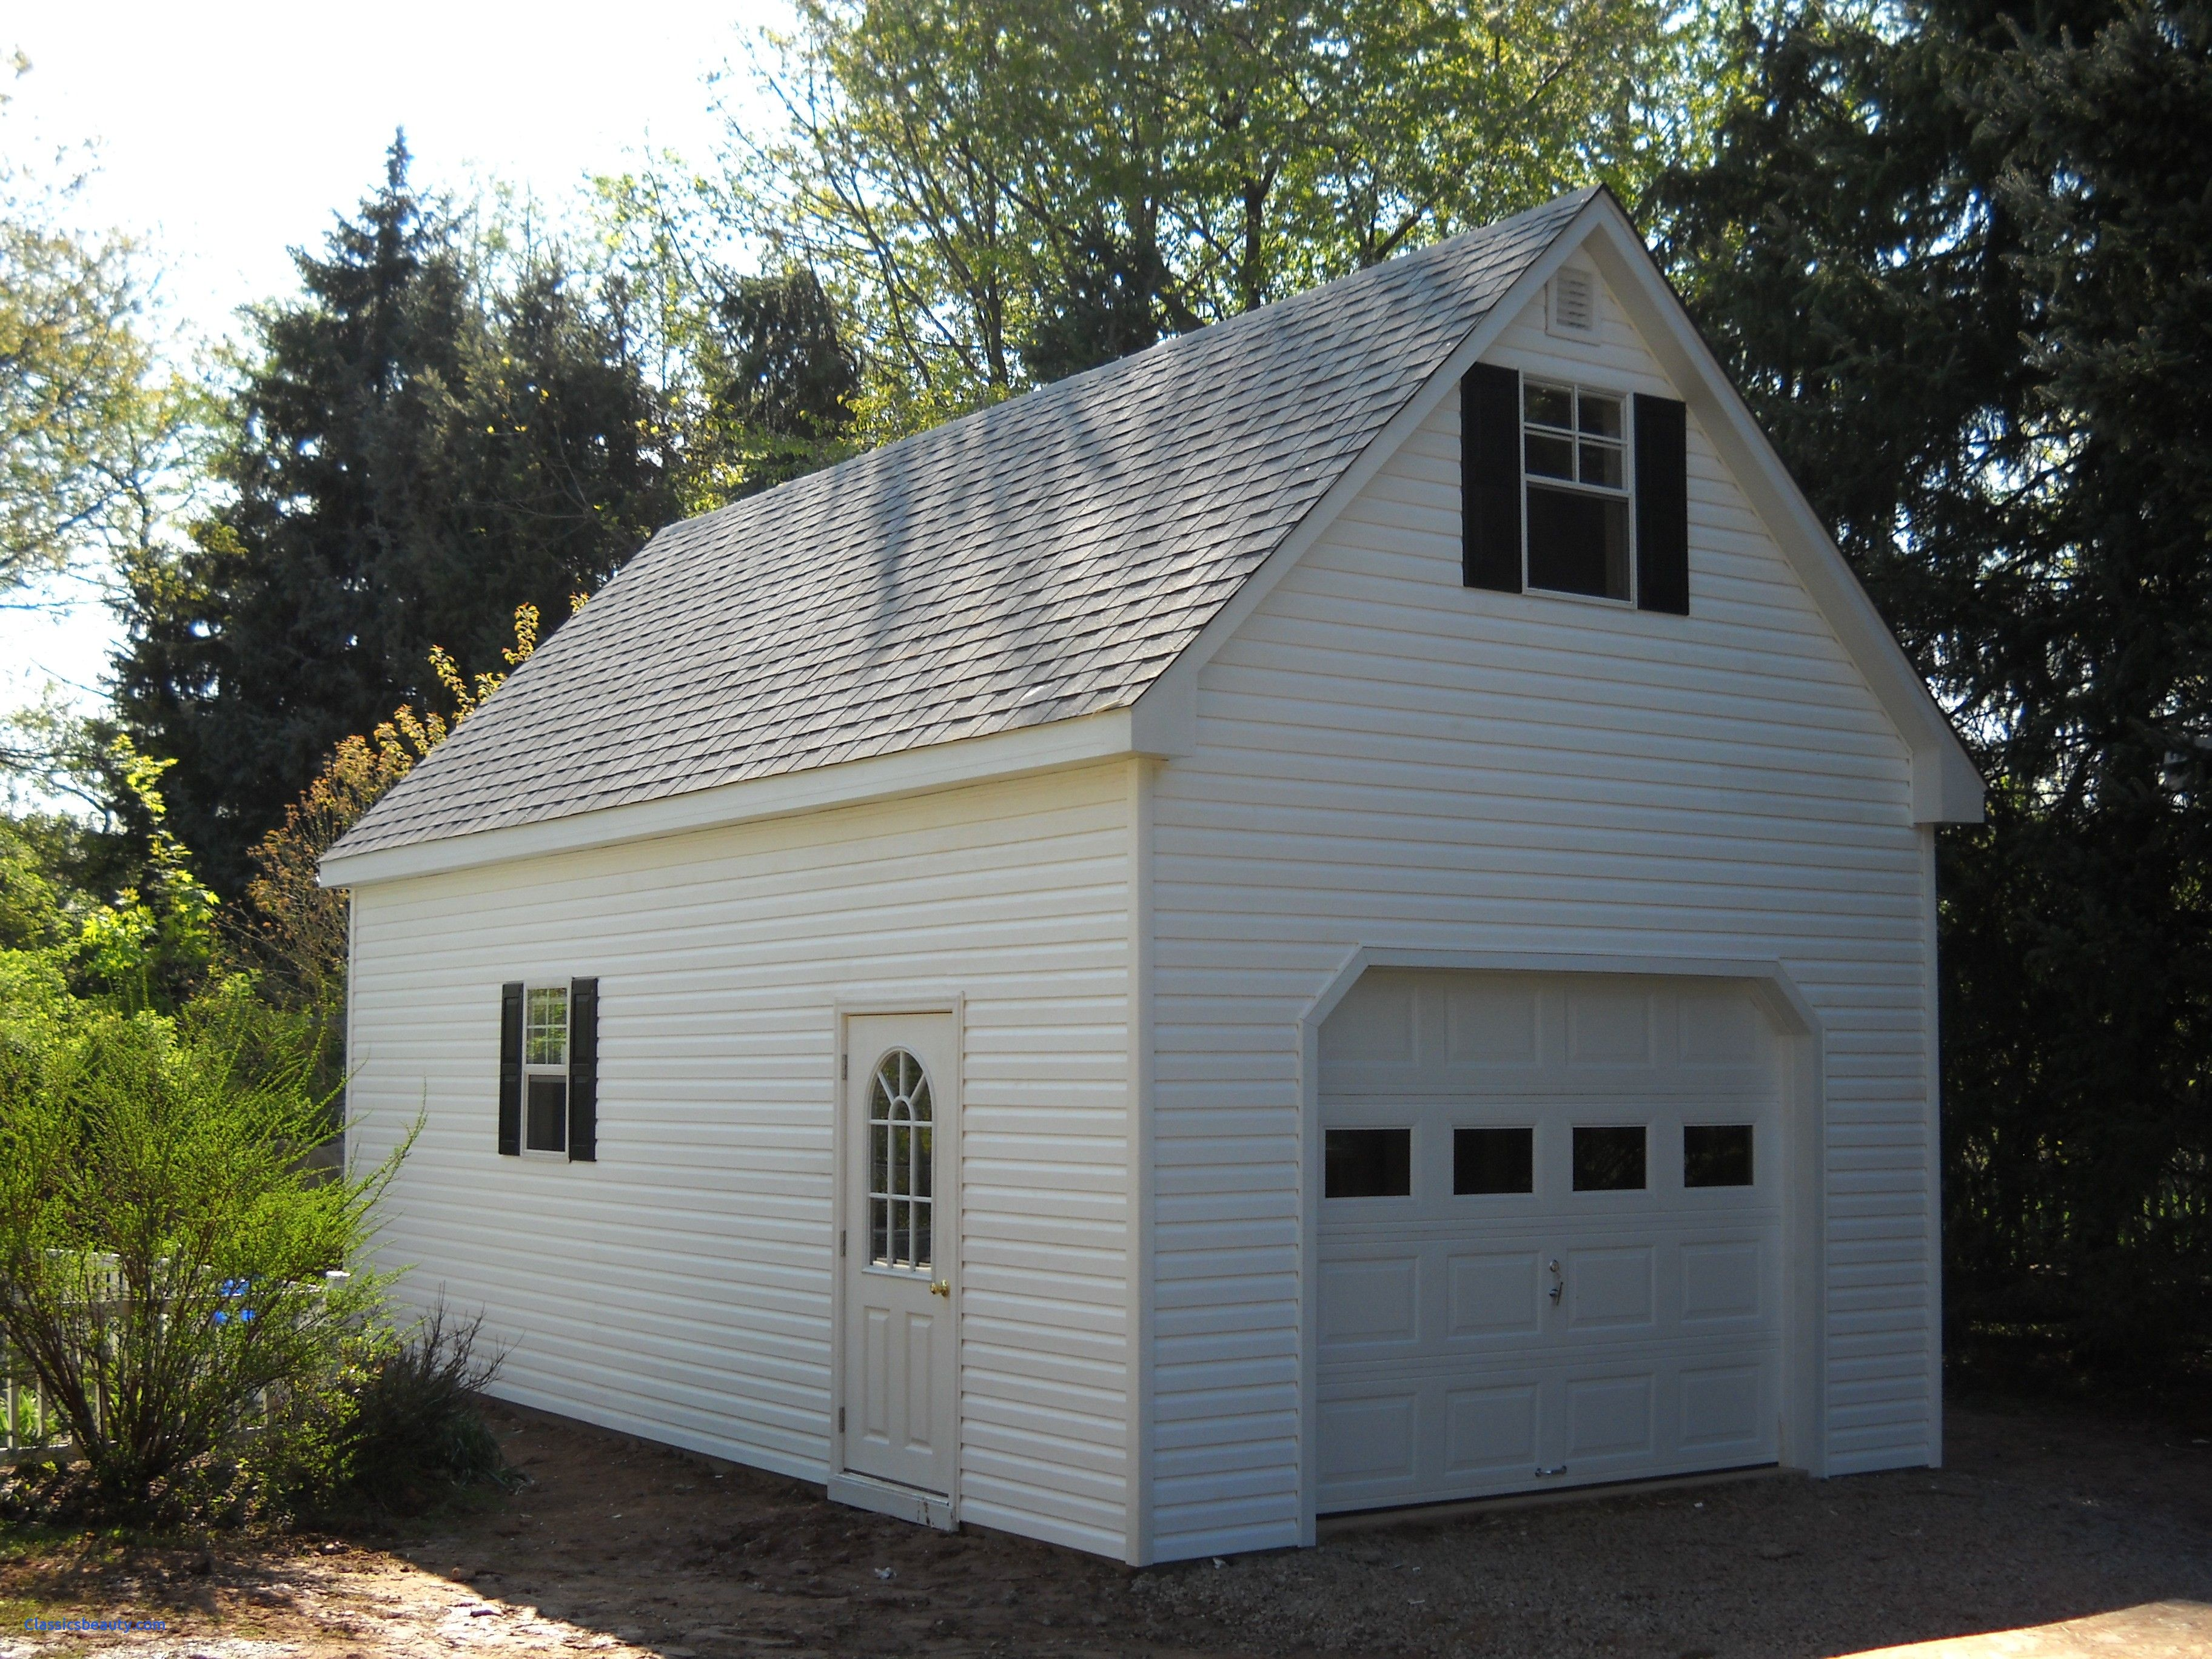 25 Awesome Detached Garage Inspirations For Your House Garage